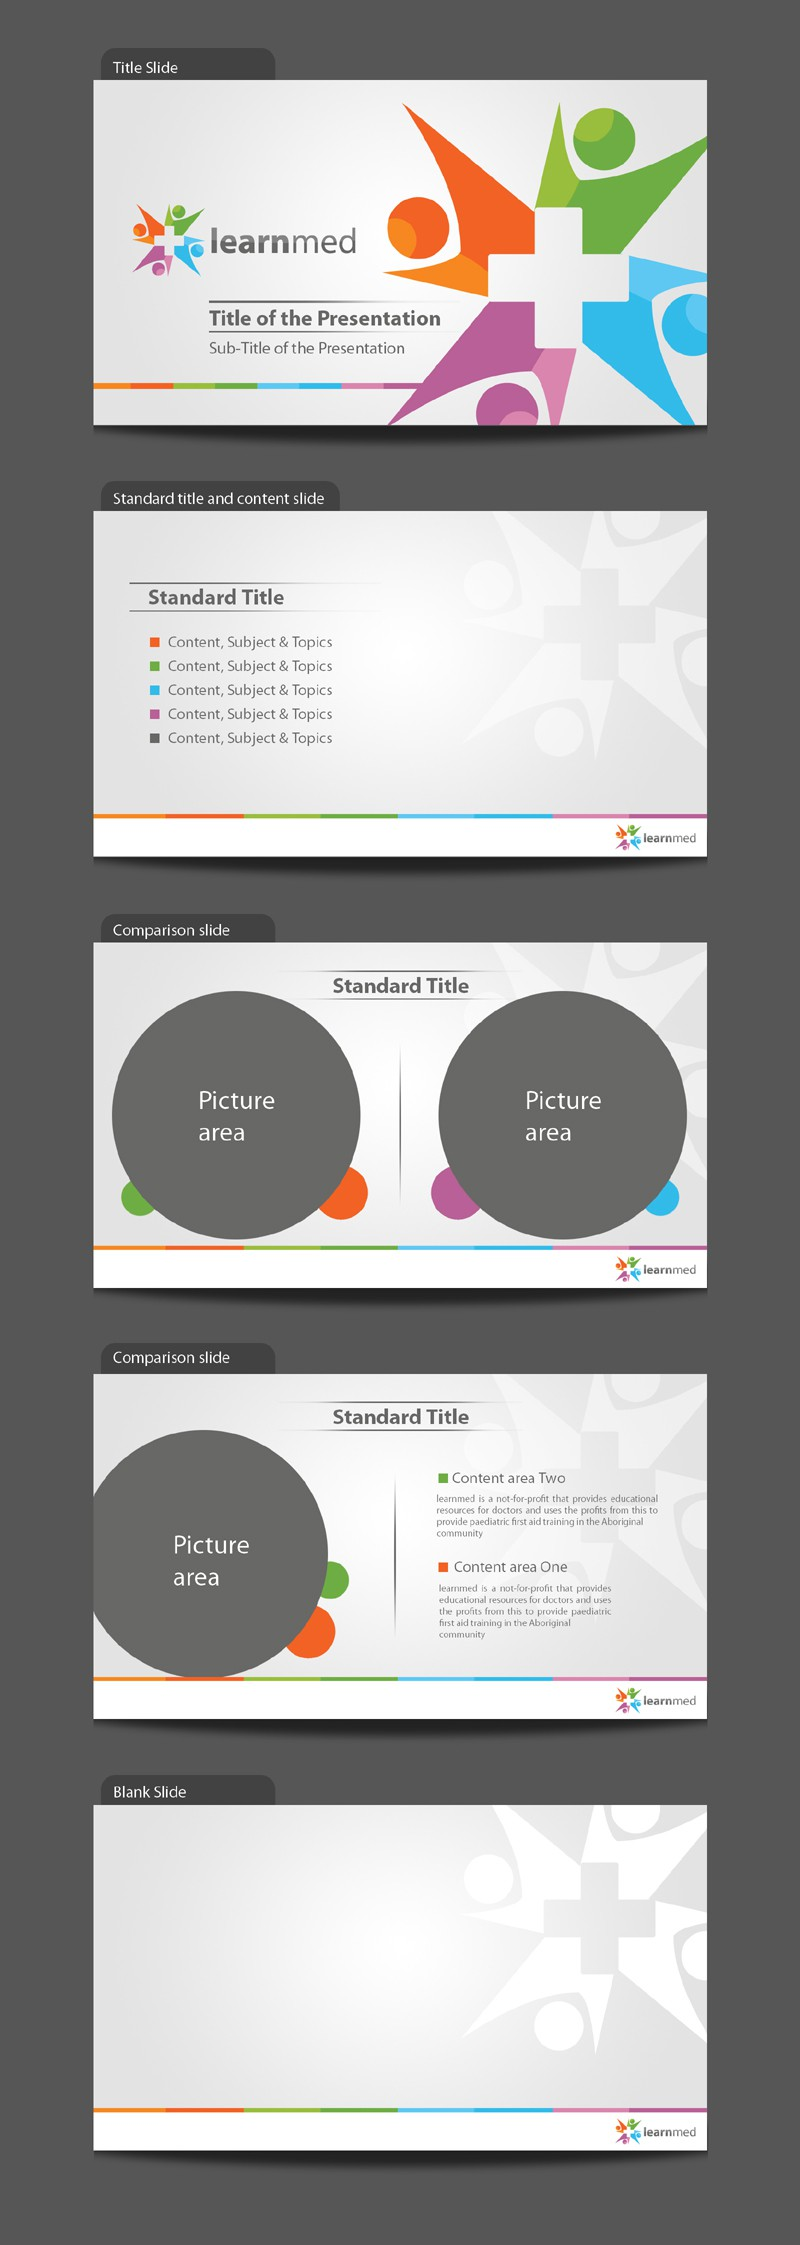 design a PowerPoint and KeyNote Template for learnmed